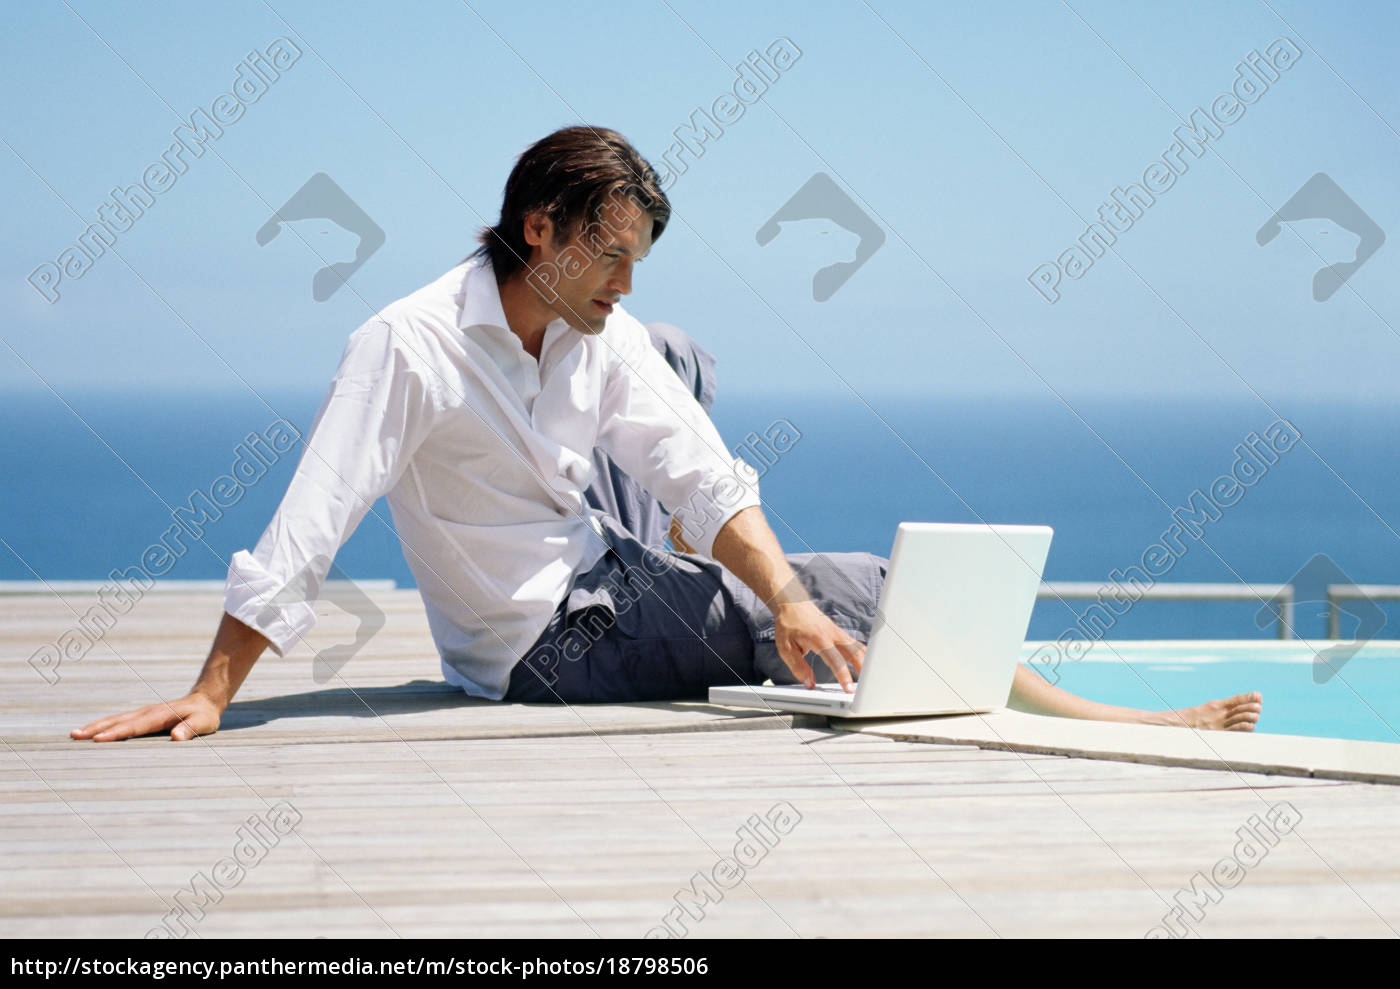 man, with, laptop, by, swimming, pool - 18798506